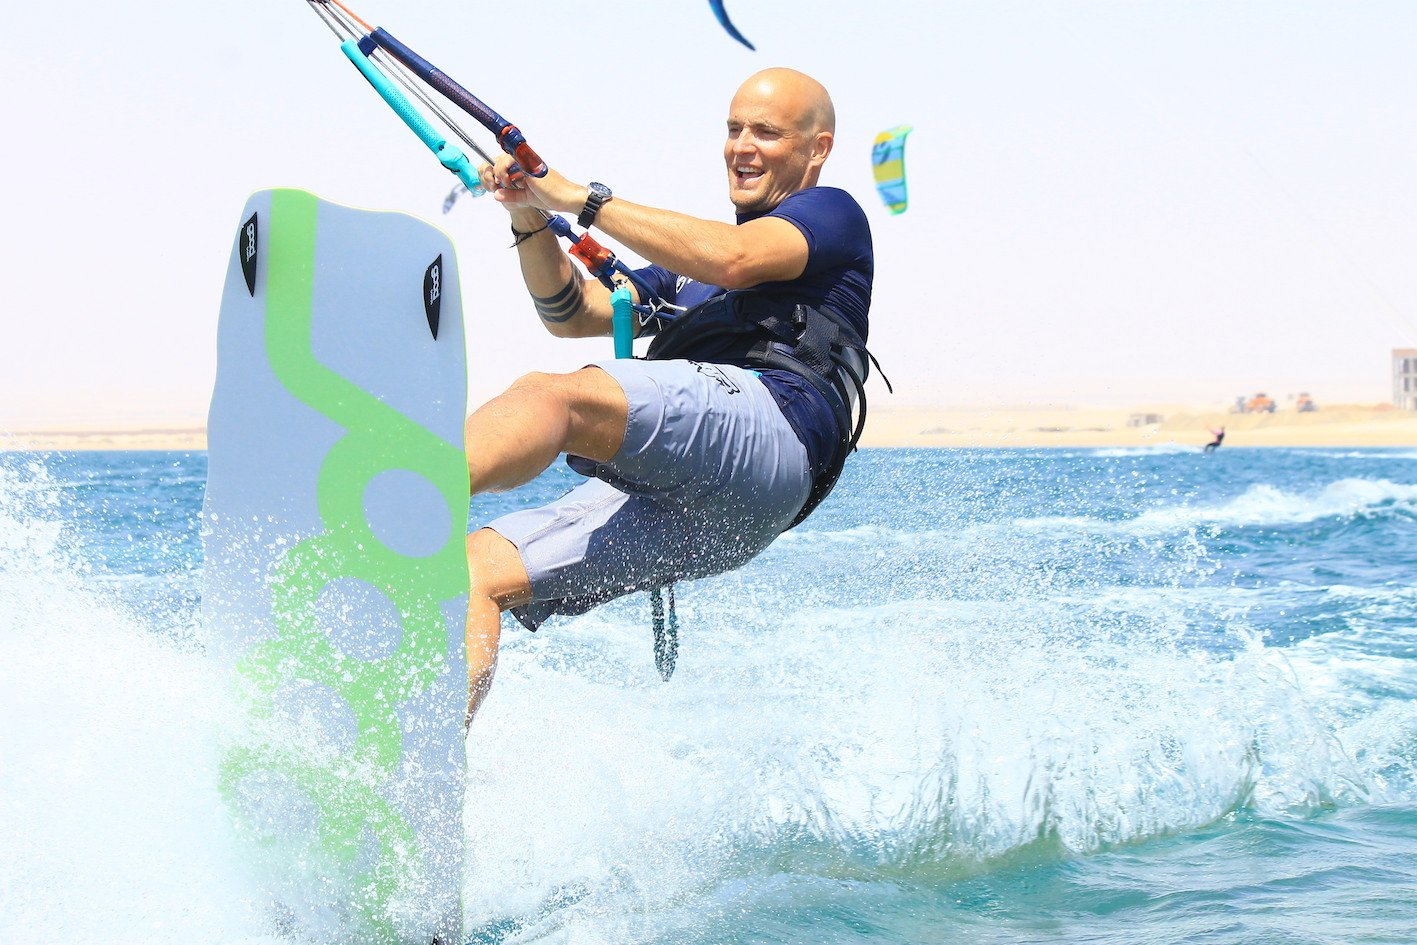 Goodboards SS20 Kiteboards